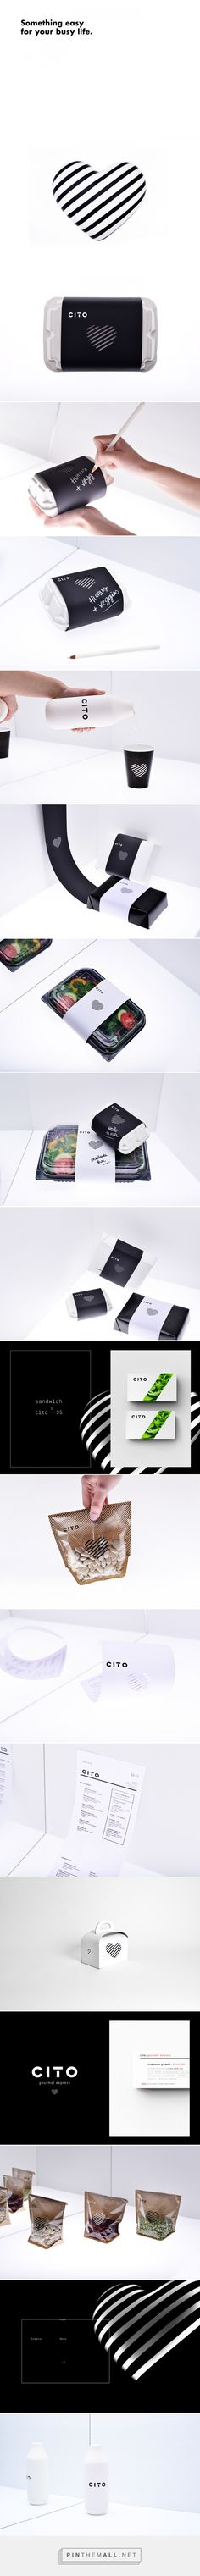 Cito on Behance- https://www.behance.net/gallery/34697163/Cito - created via https://pinthemall.net